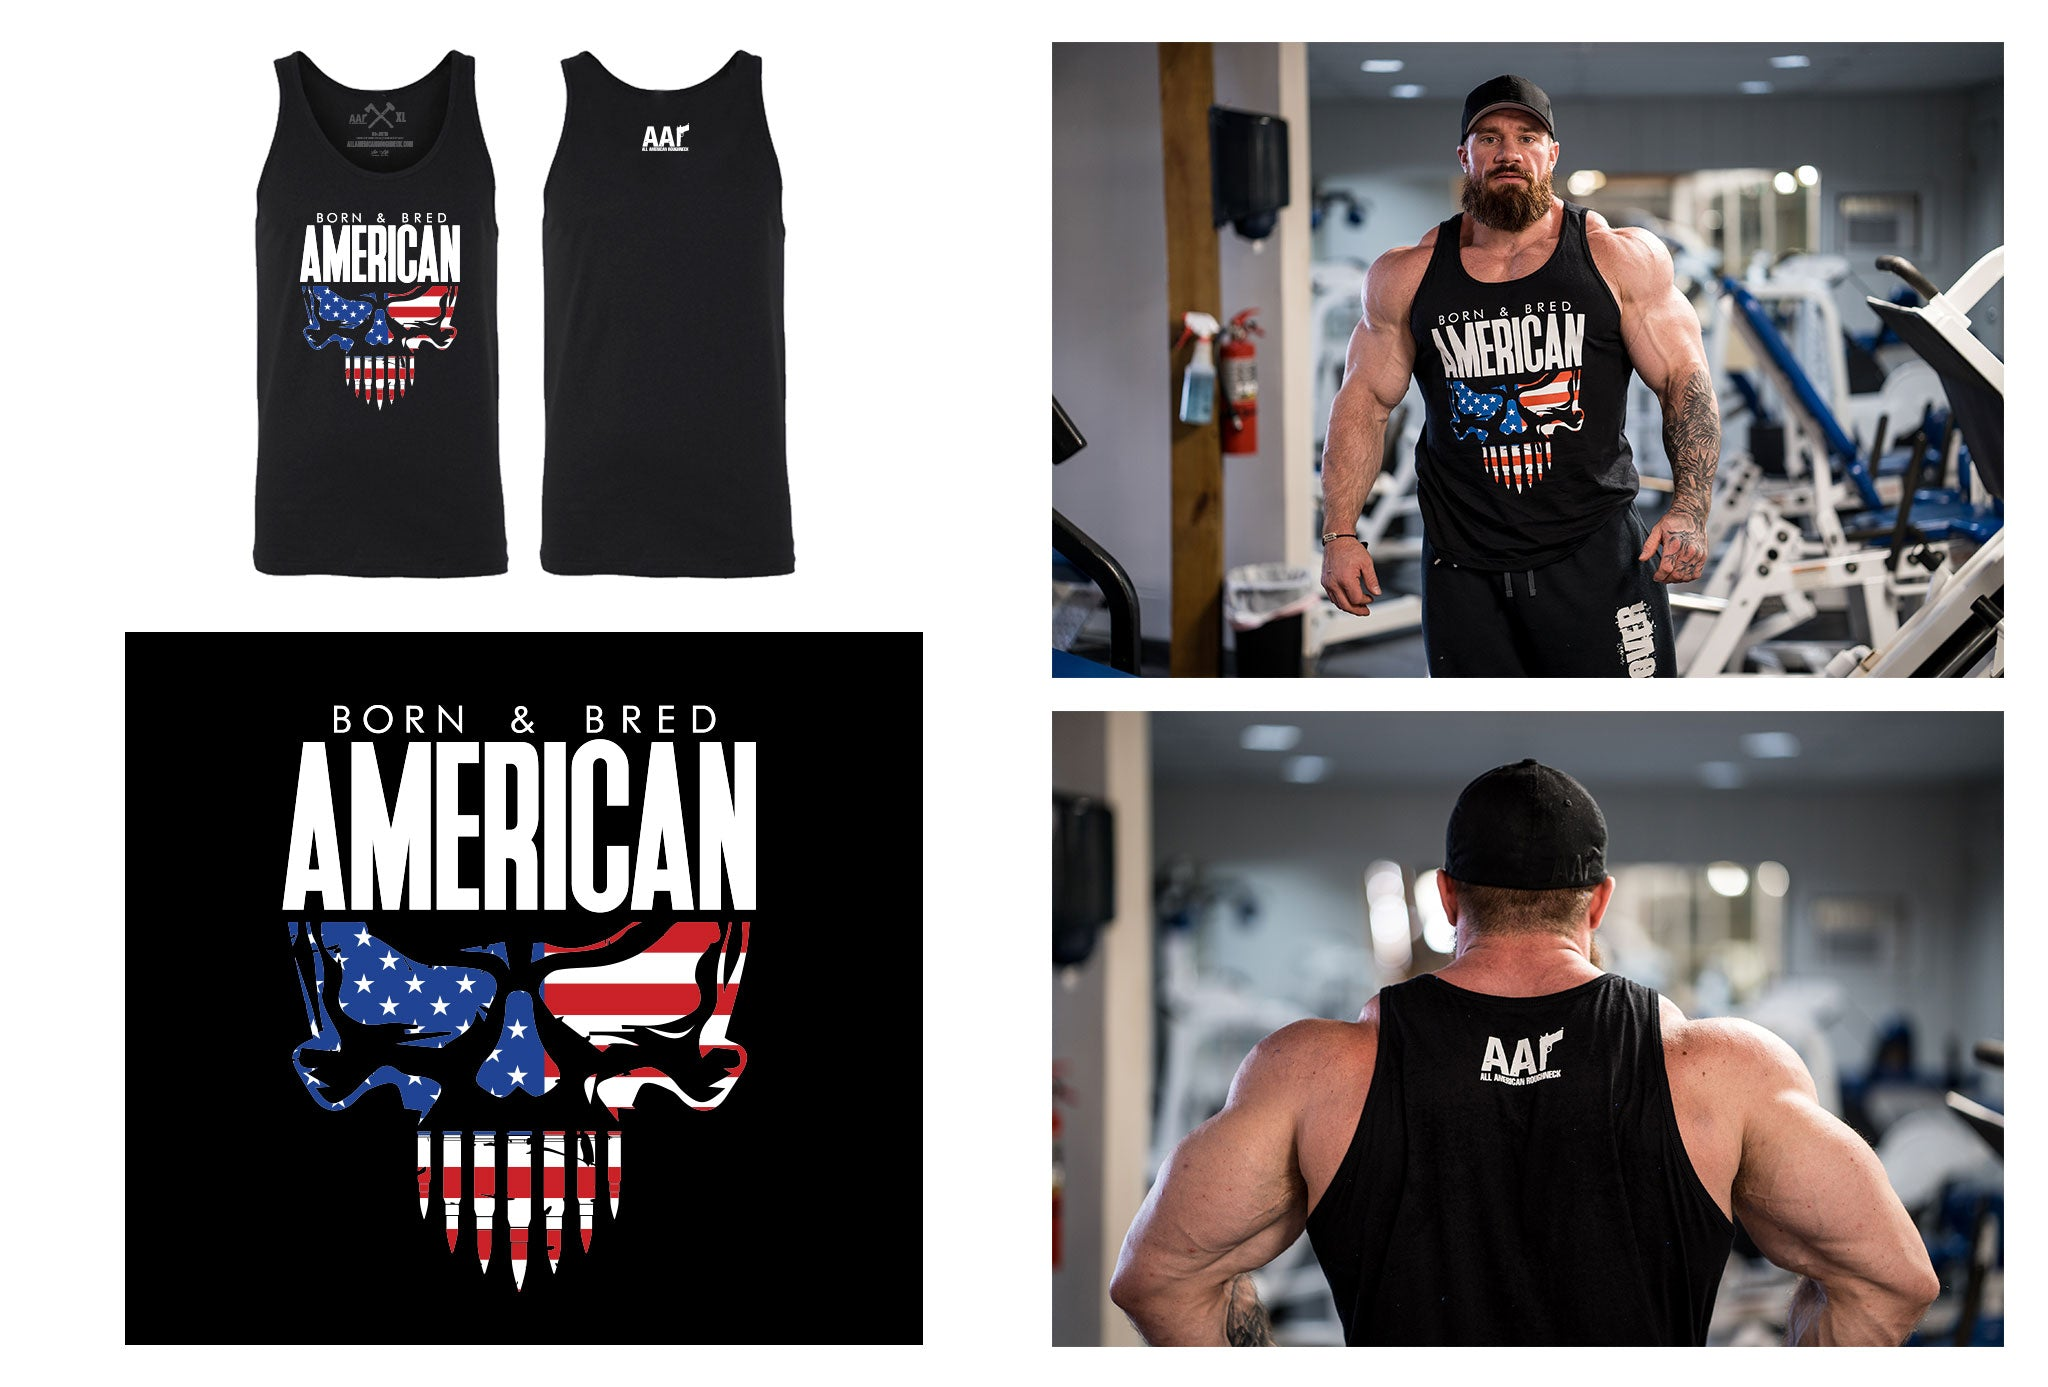 Born & Bred American Tank Top